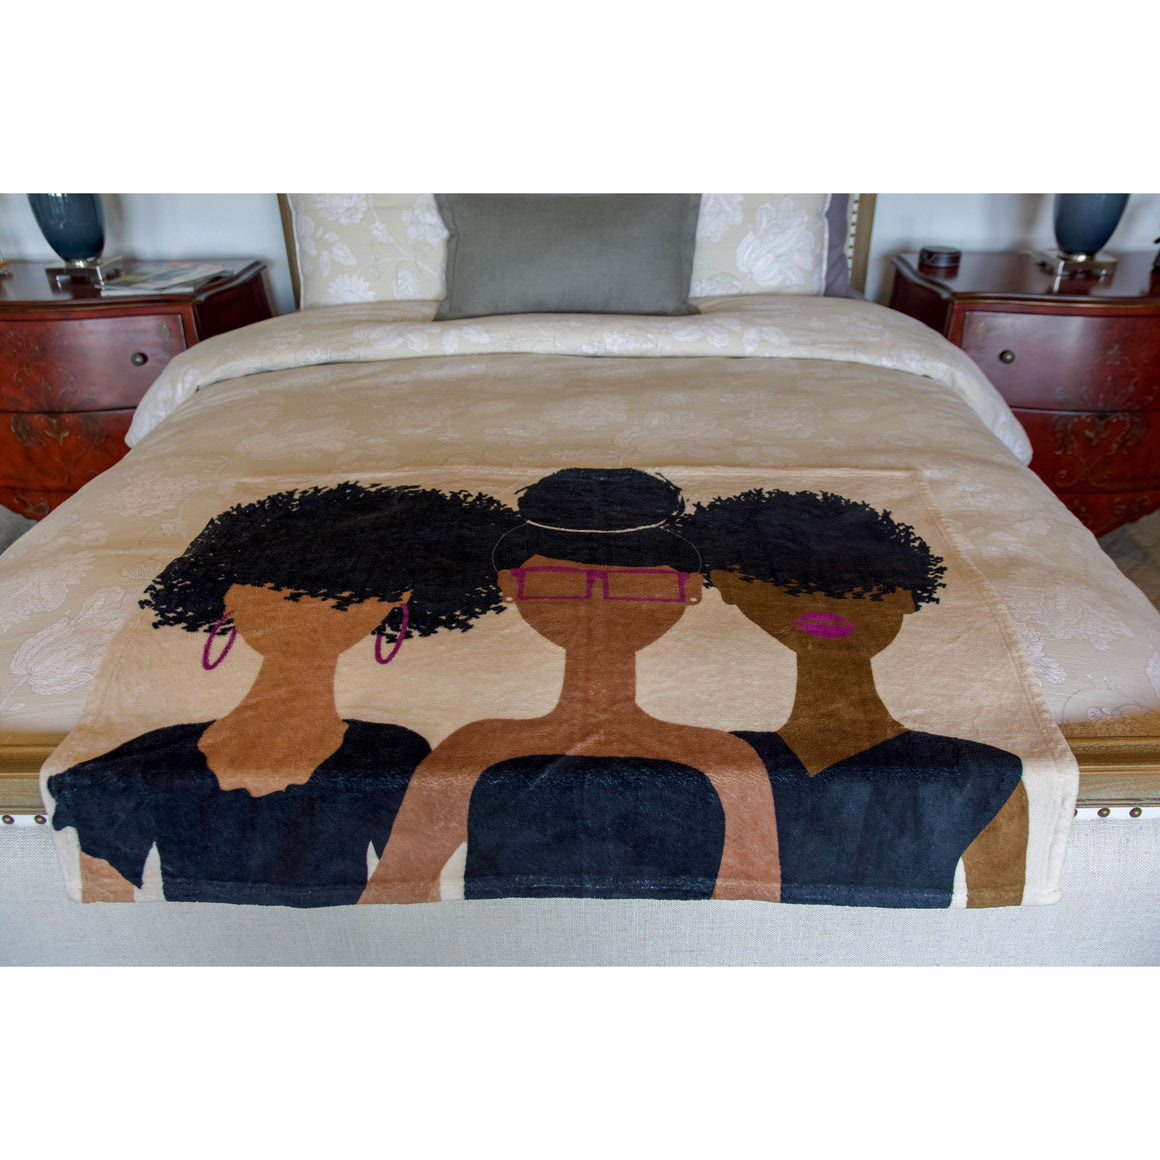 Curly Girl Trio (Royalty) blanket